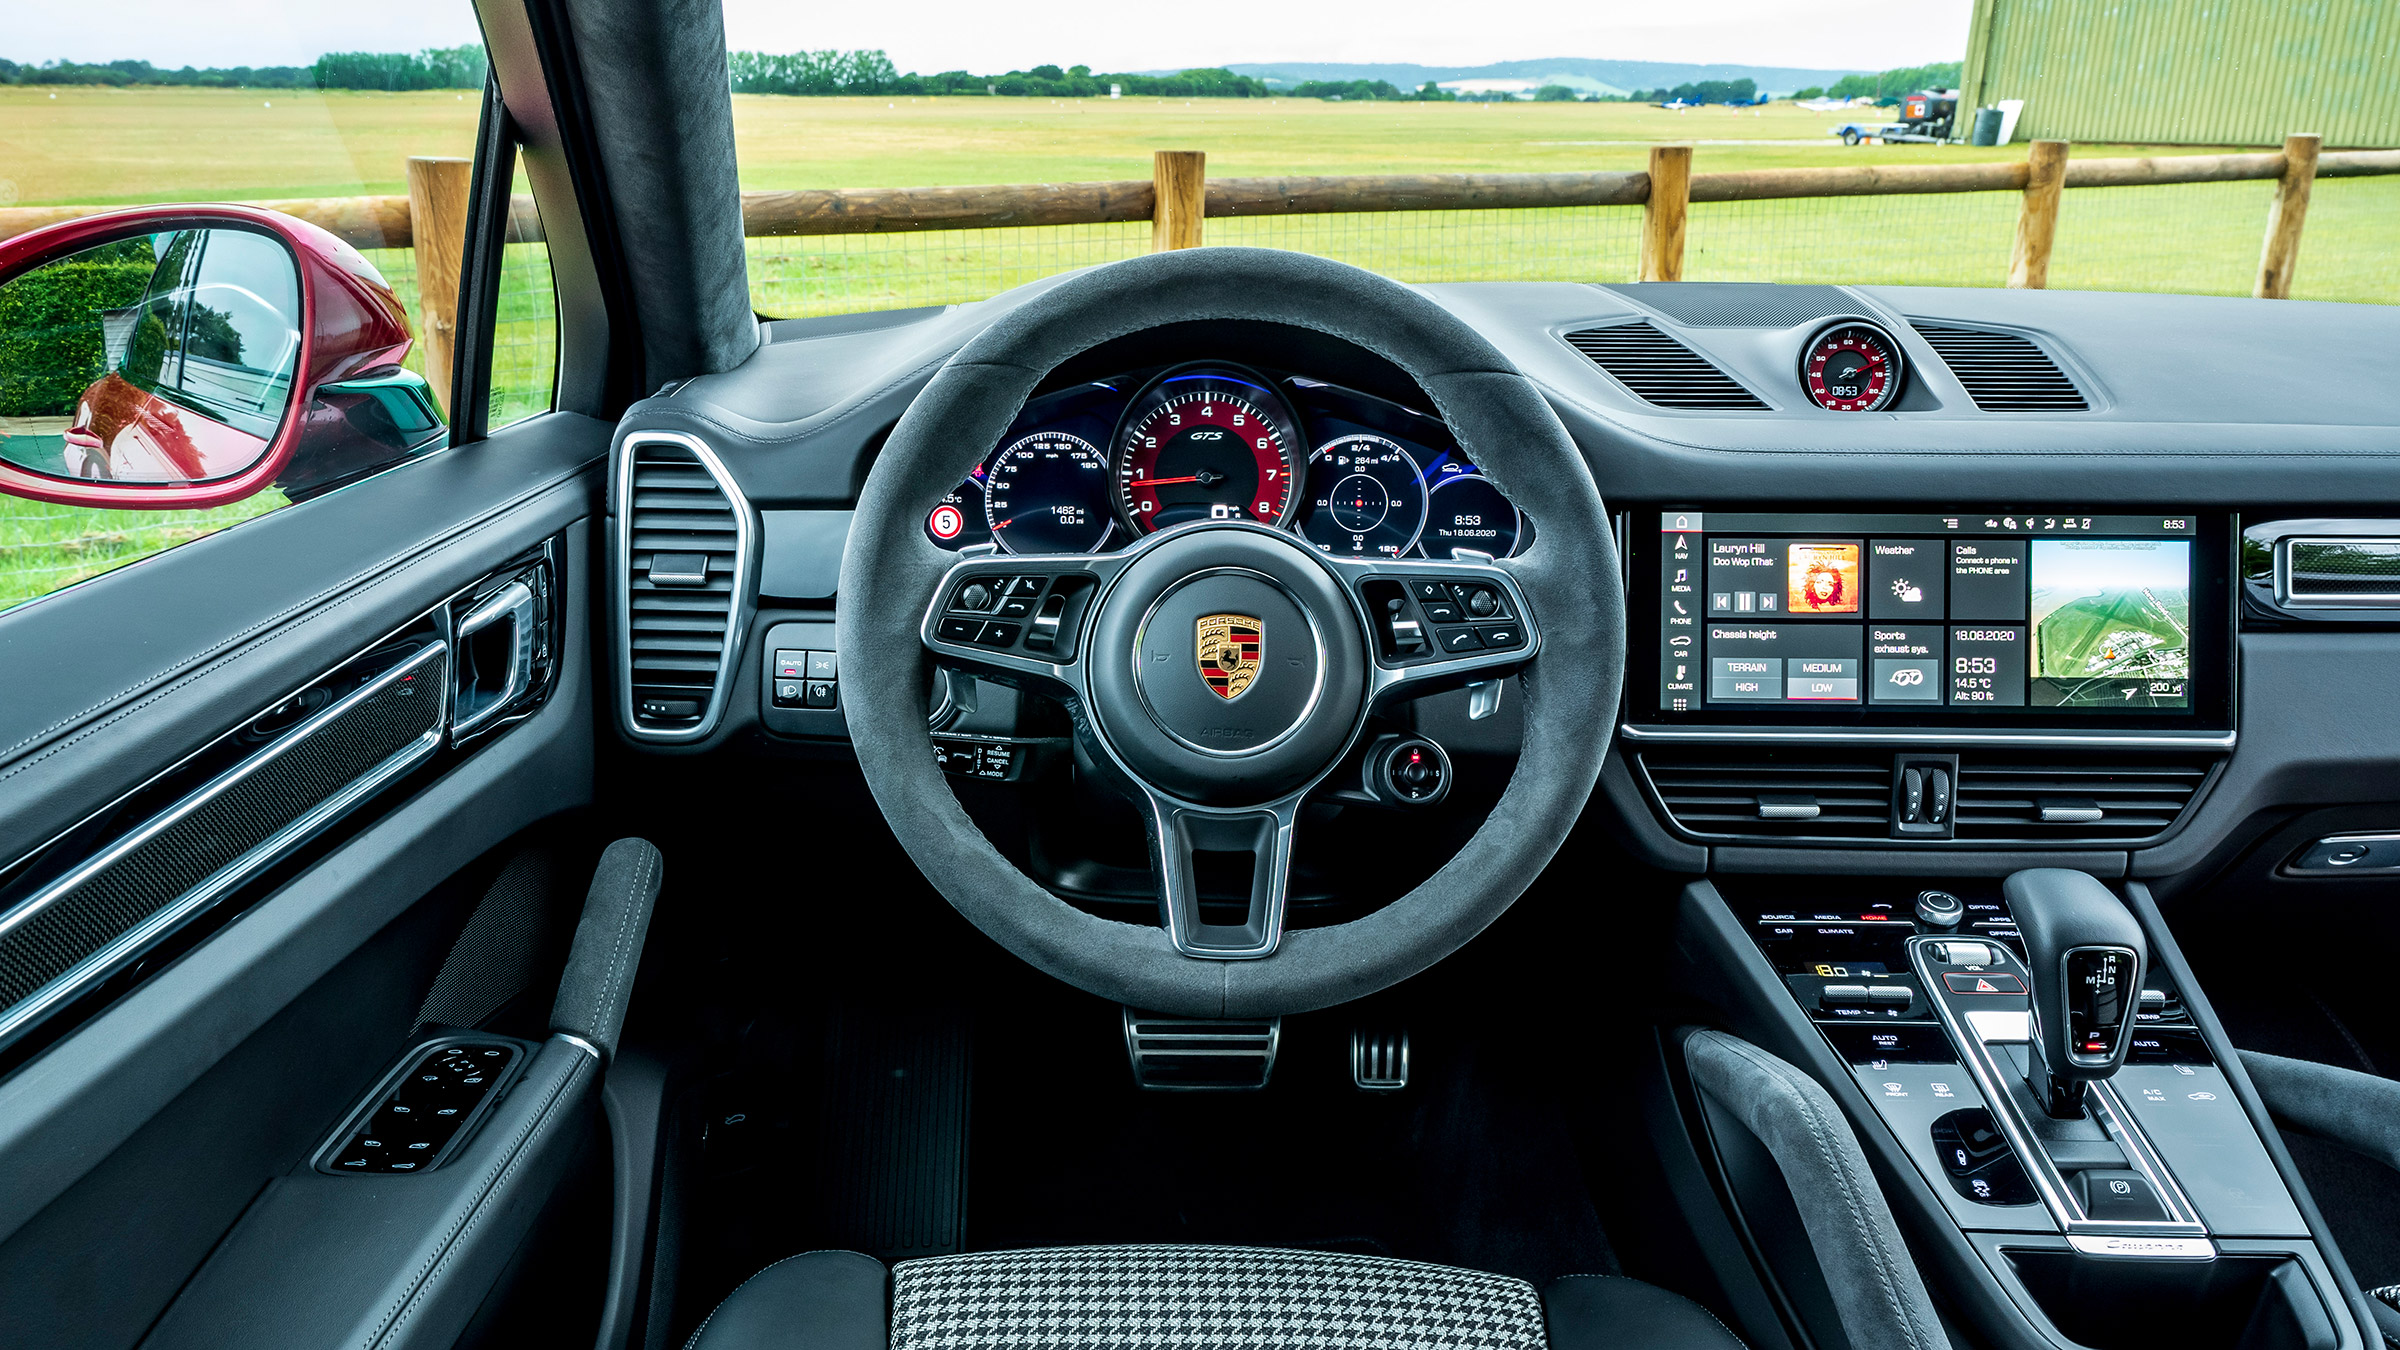 Porsche Cayenne Gts Coupe 2020 Review New Gts Upsized To A V8 Evo